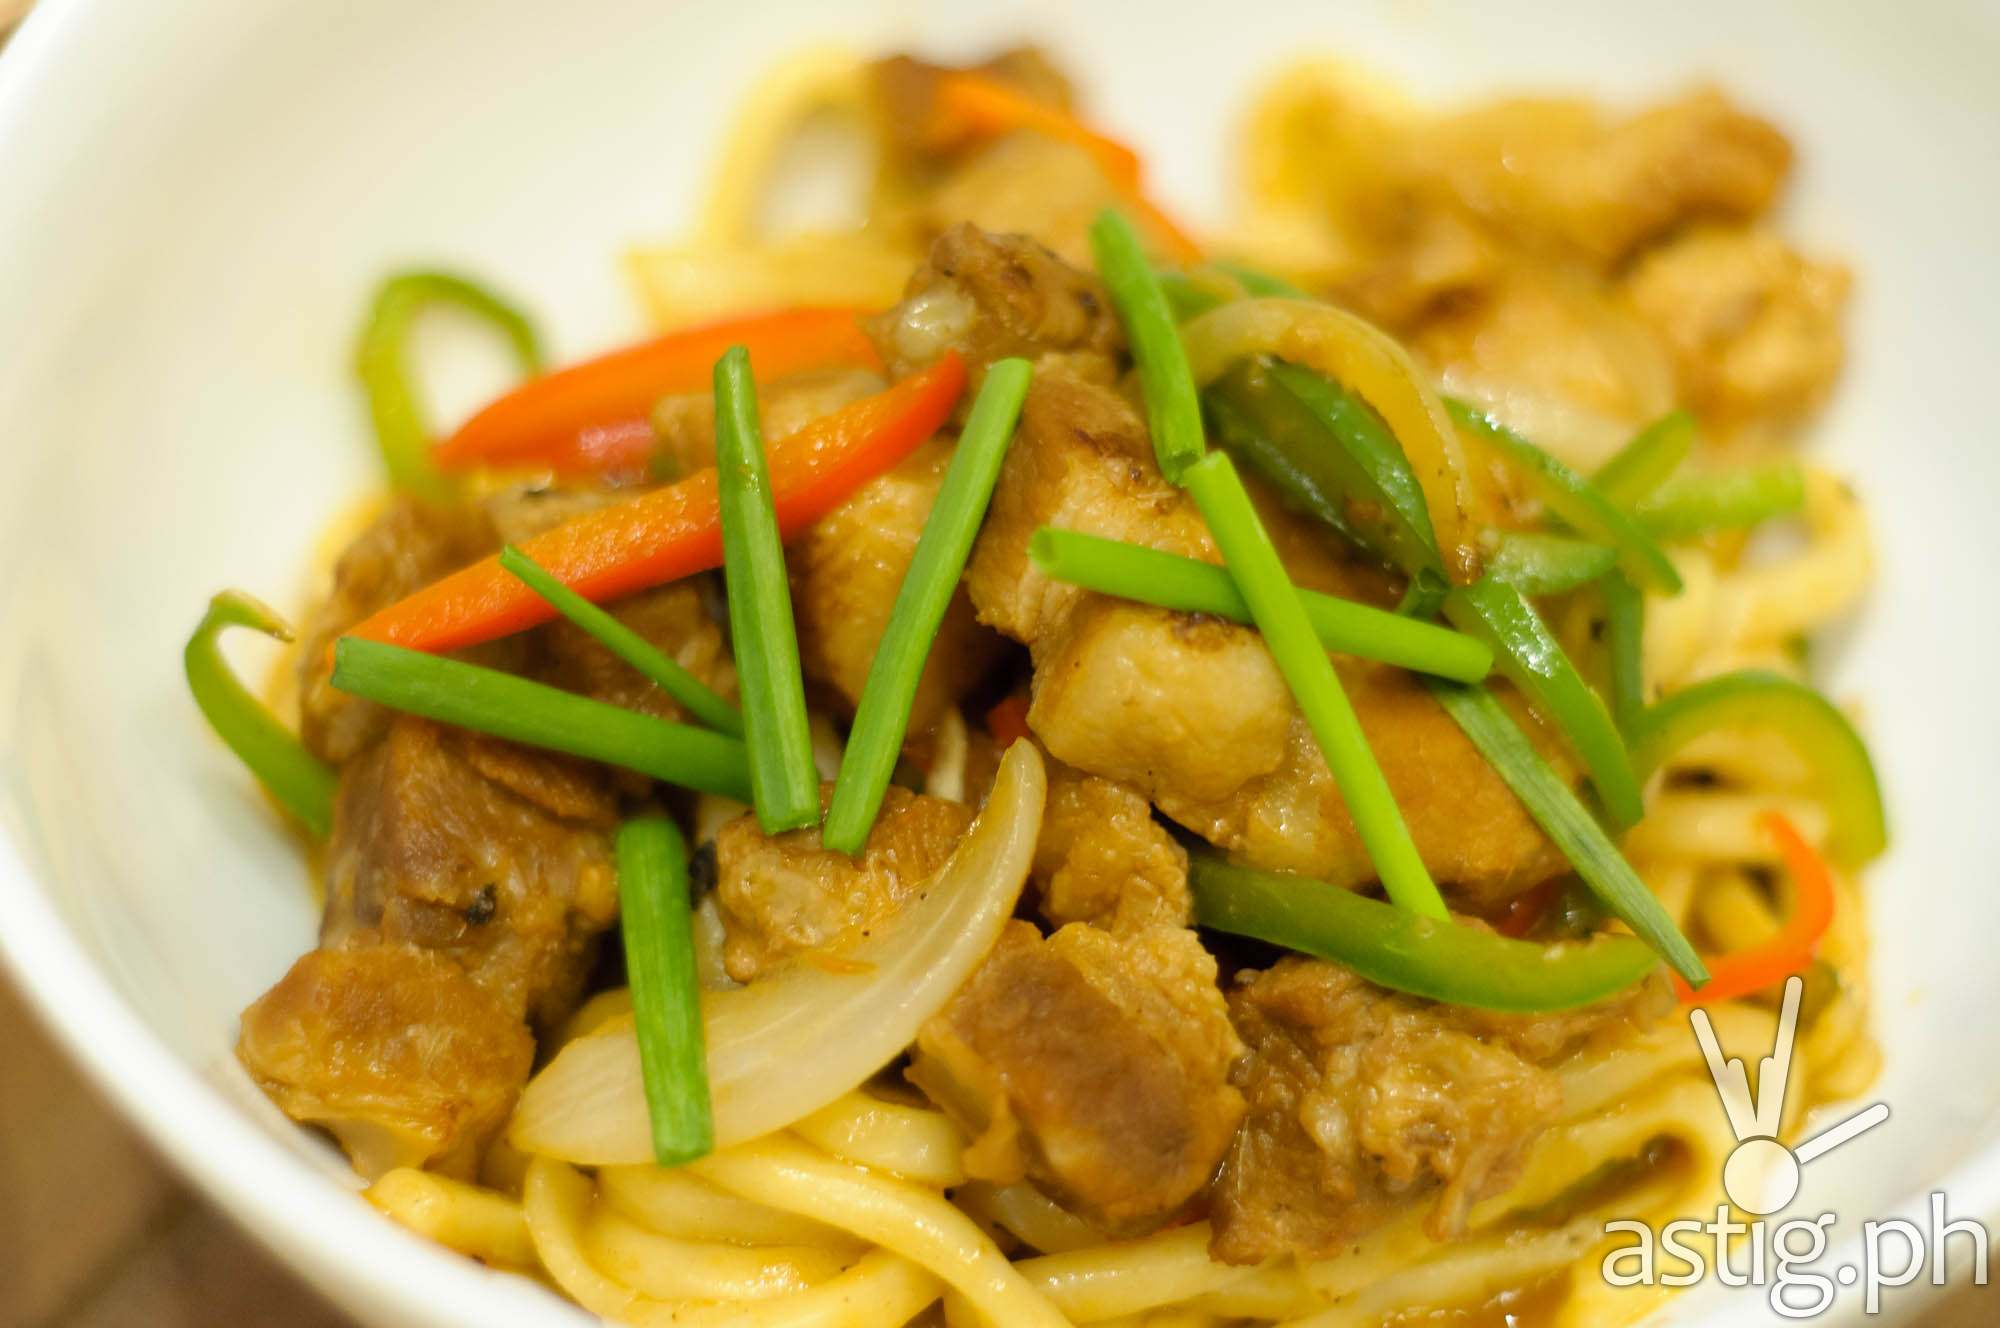 Braised Pork Belly with Udon Noodles (P375) - Mian at Marriott Grand Ballroom